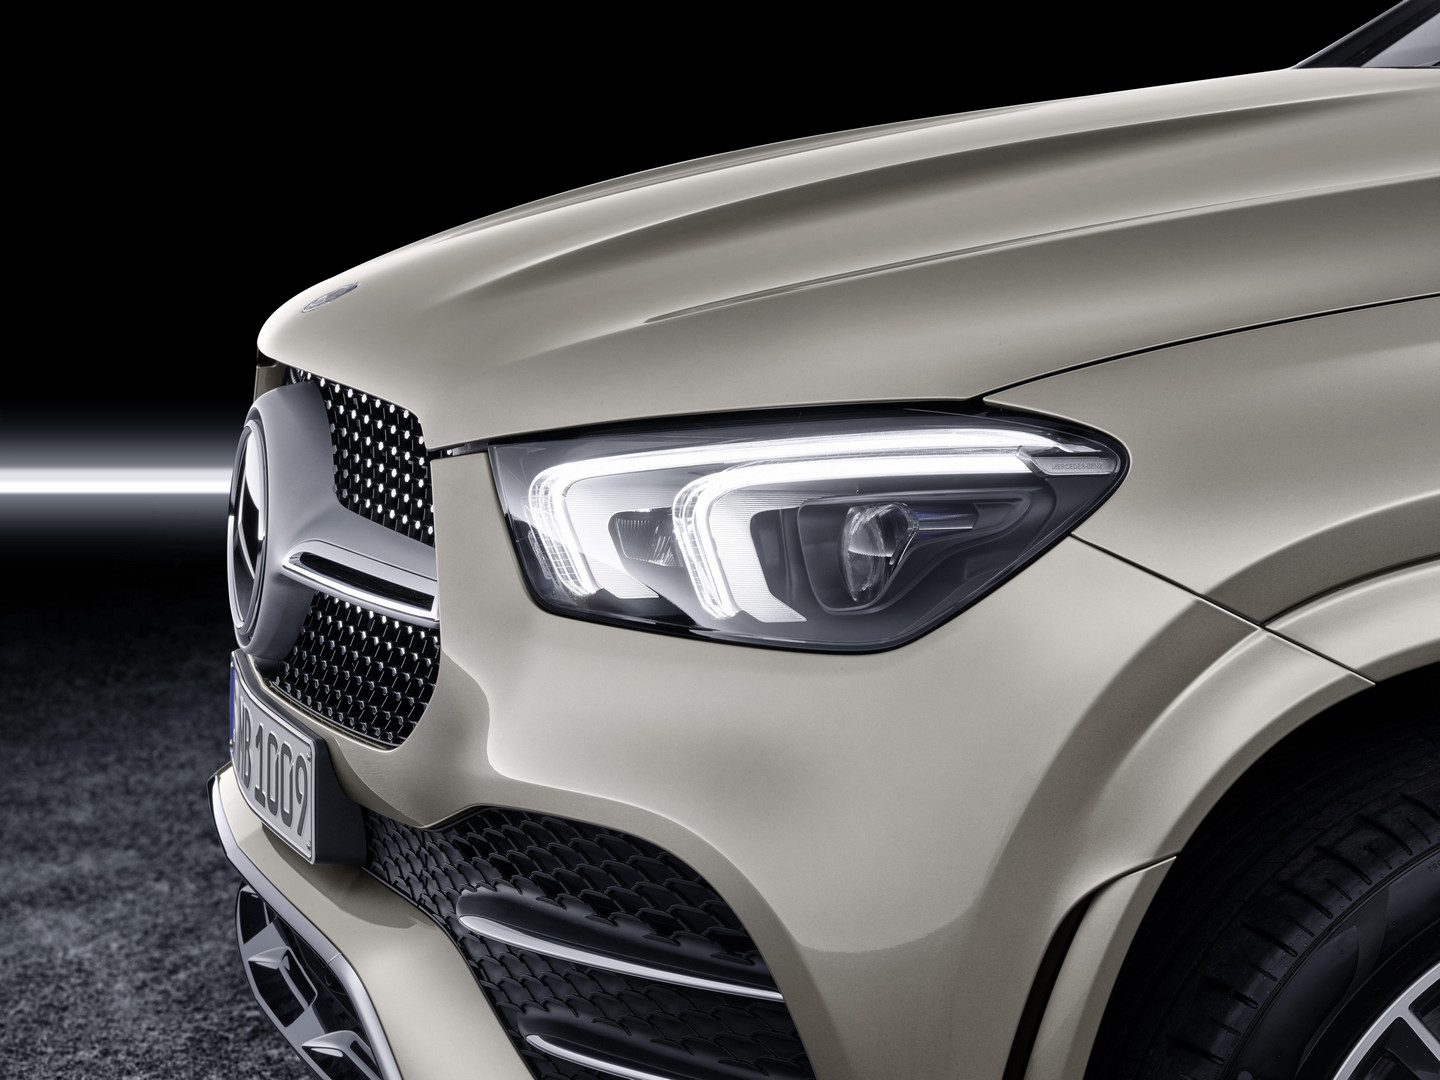 2020 Mercedes-Benz GLE Coupe Headlight